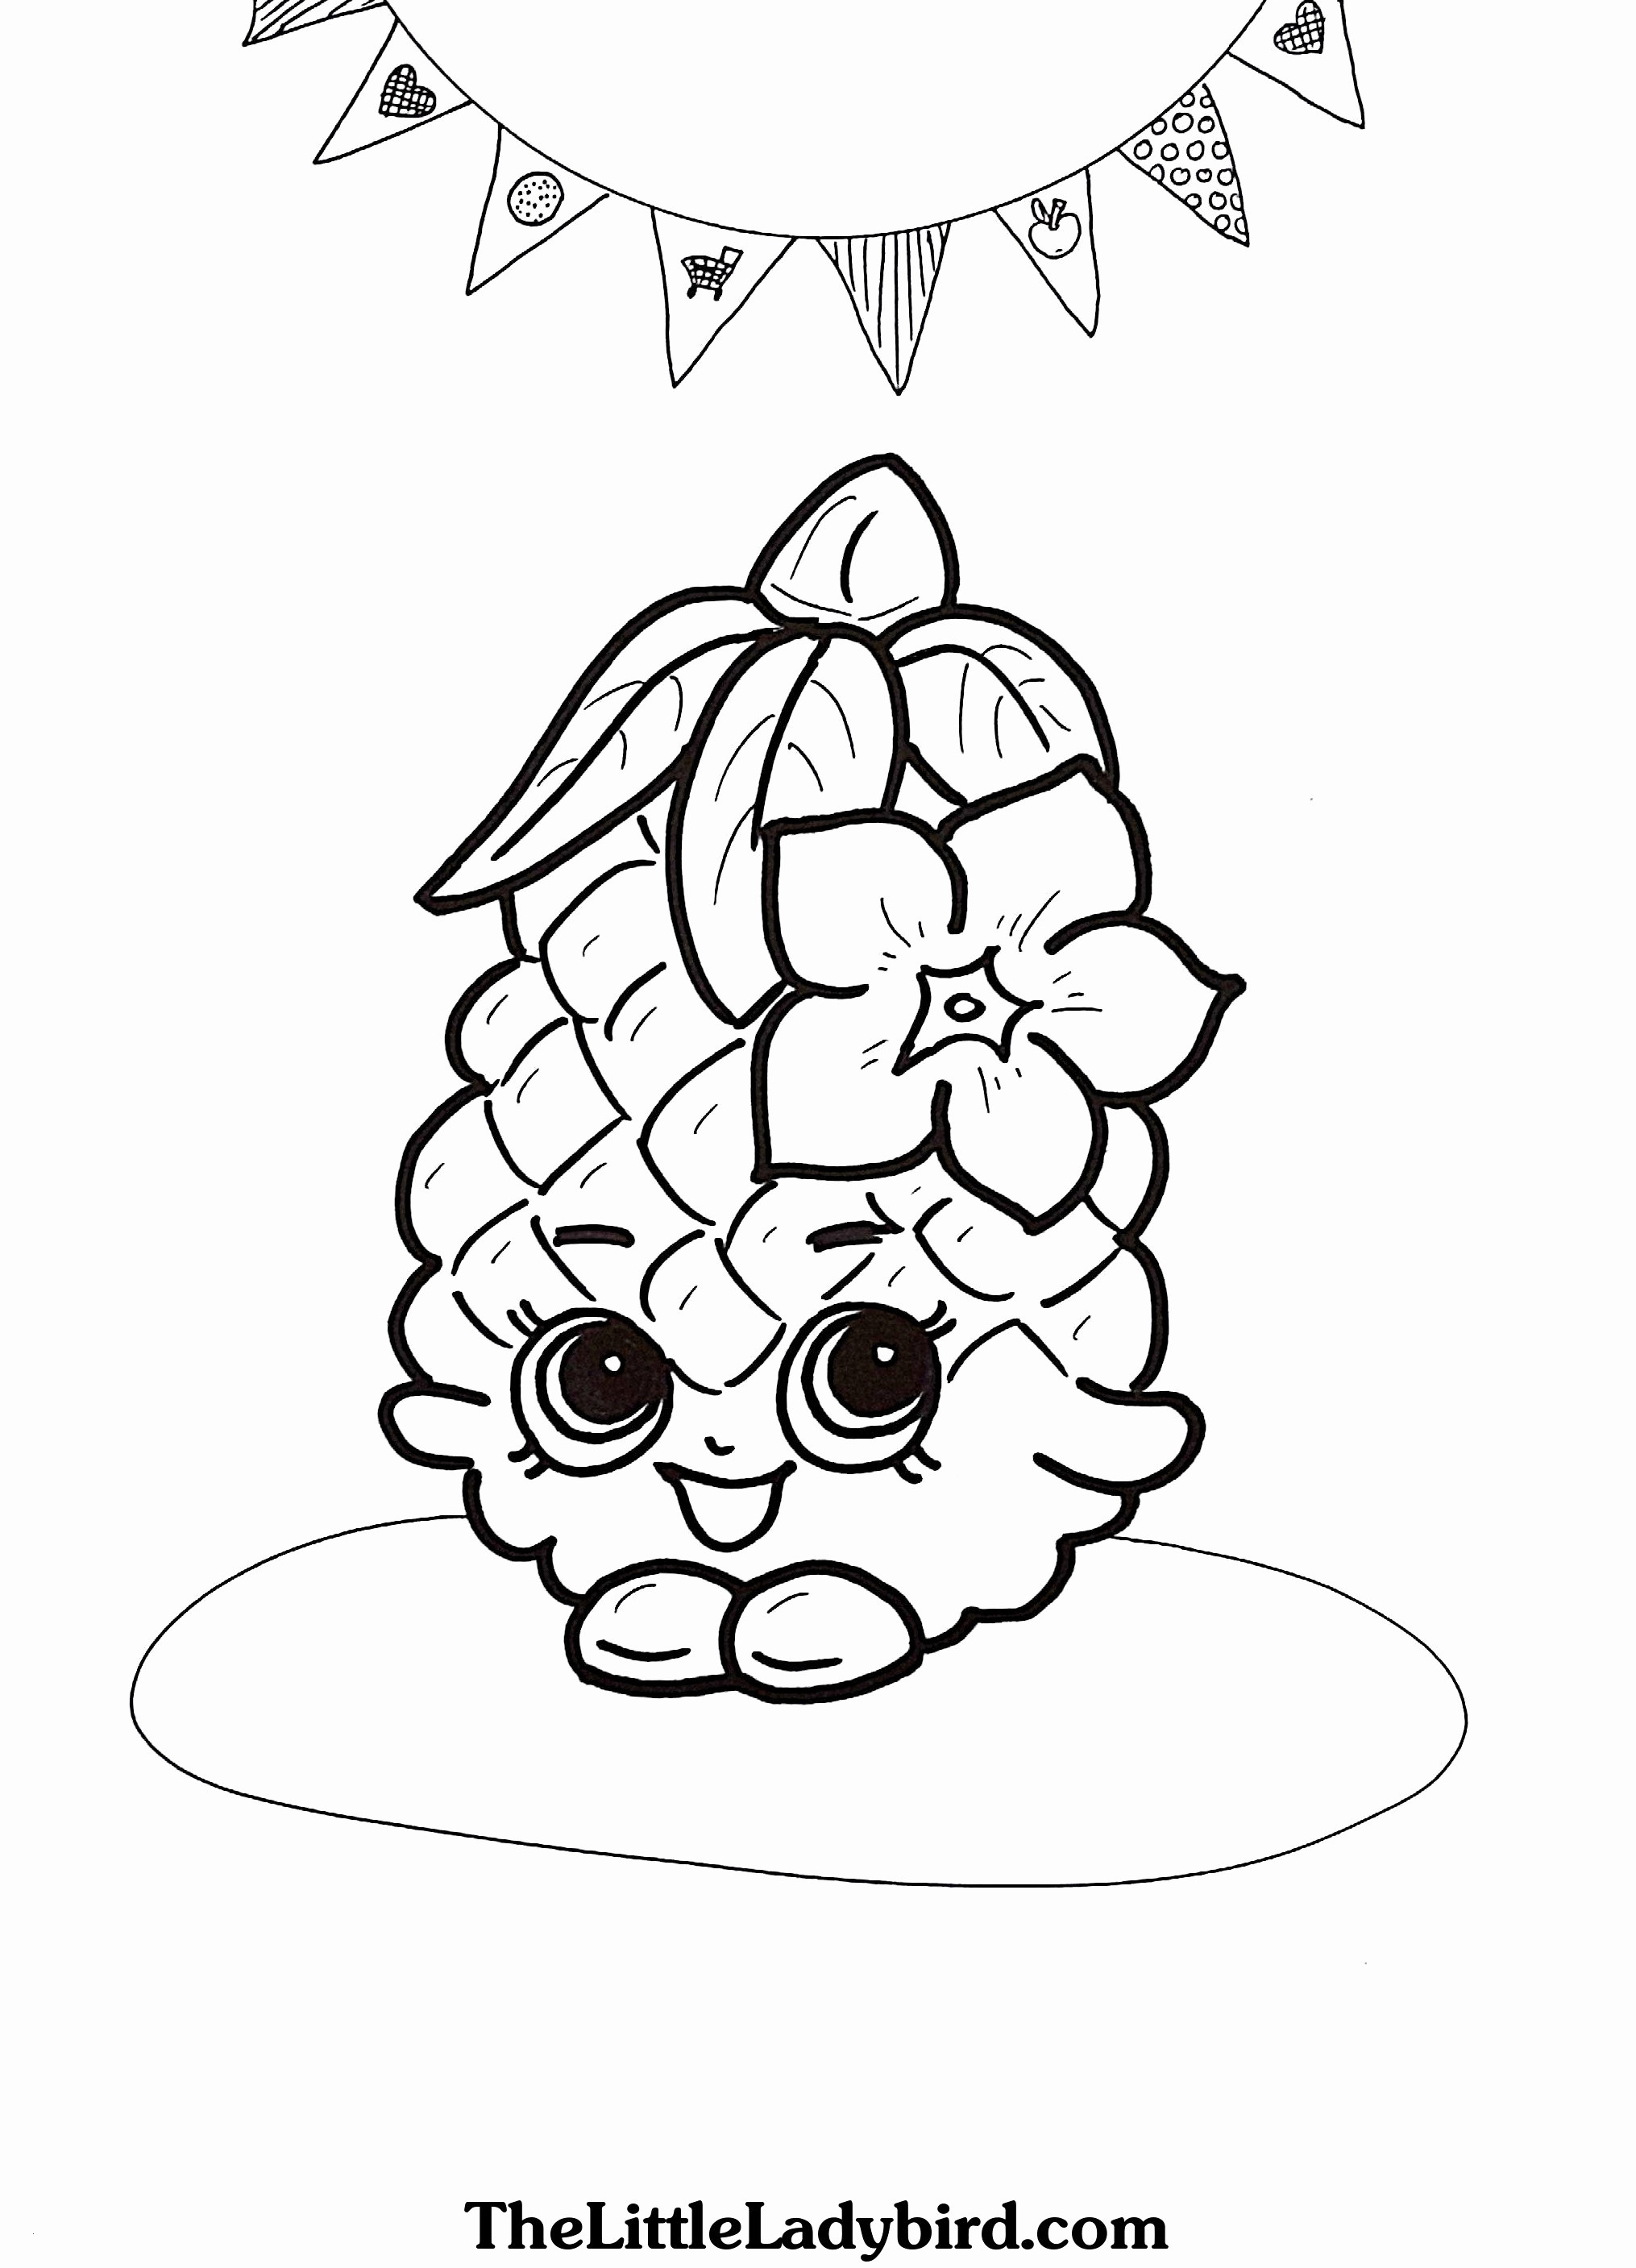 loon coloring pages Download-Power Rangers Printable Coloring Pages Coloring Fabulous Coloring Pages Line New Line Coloring 0d 6-o